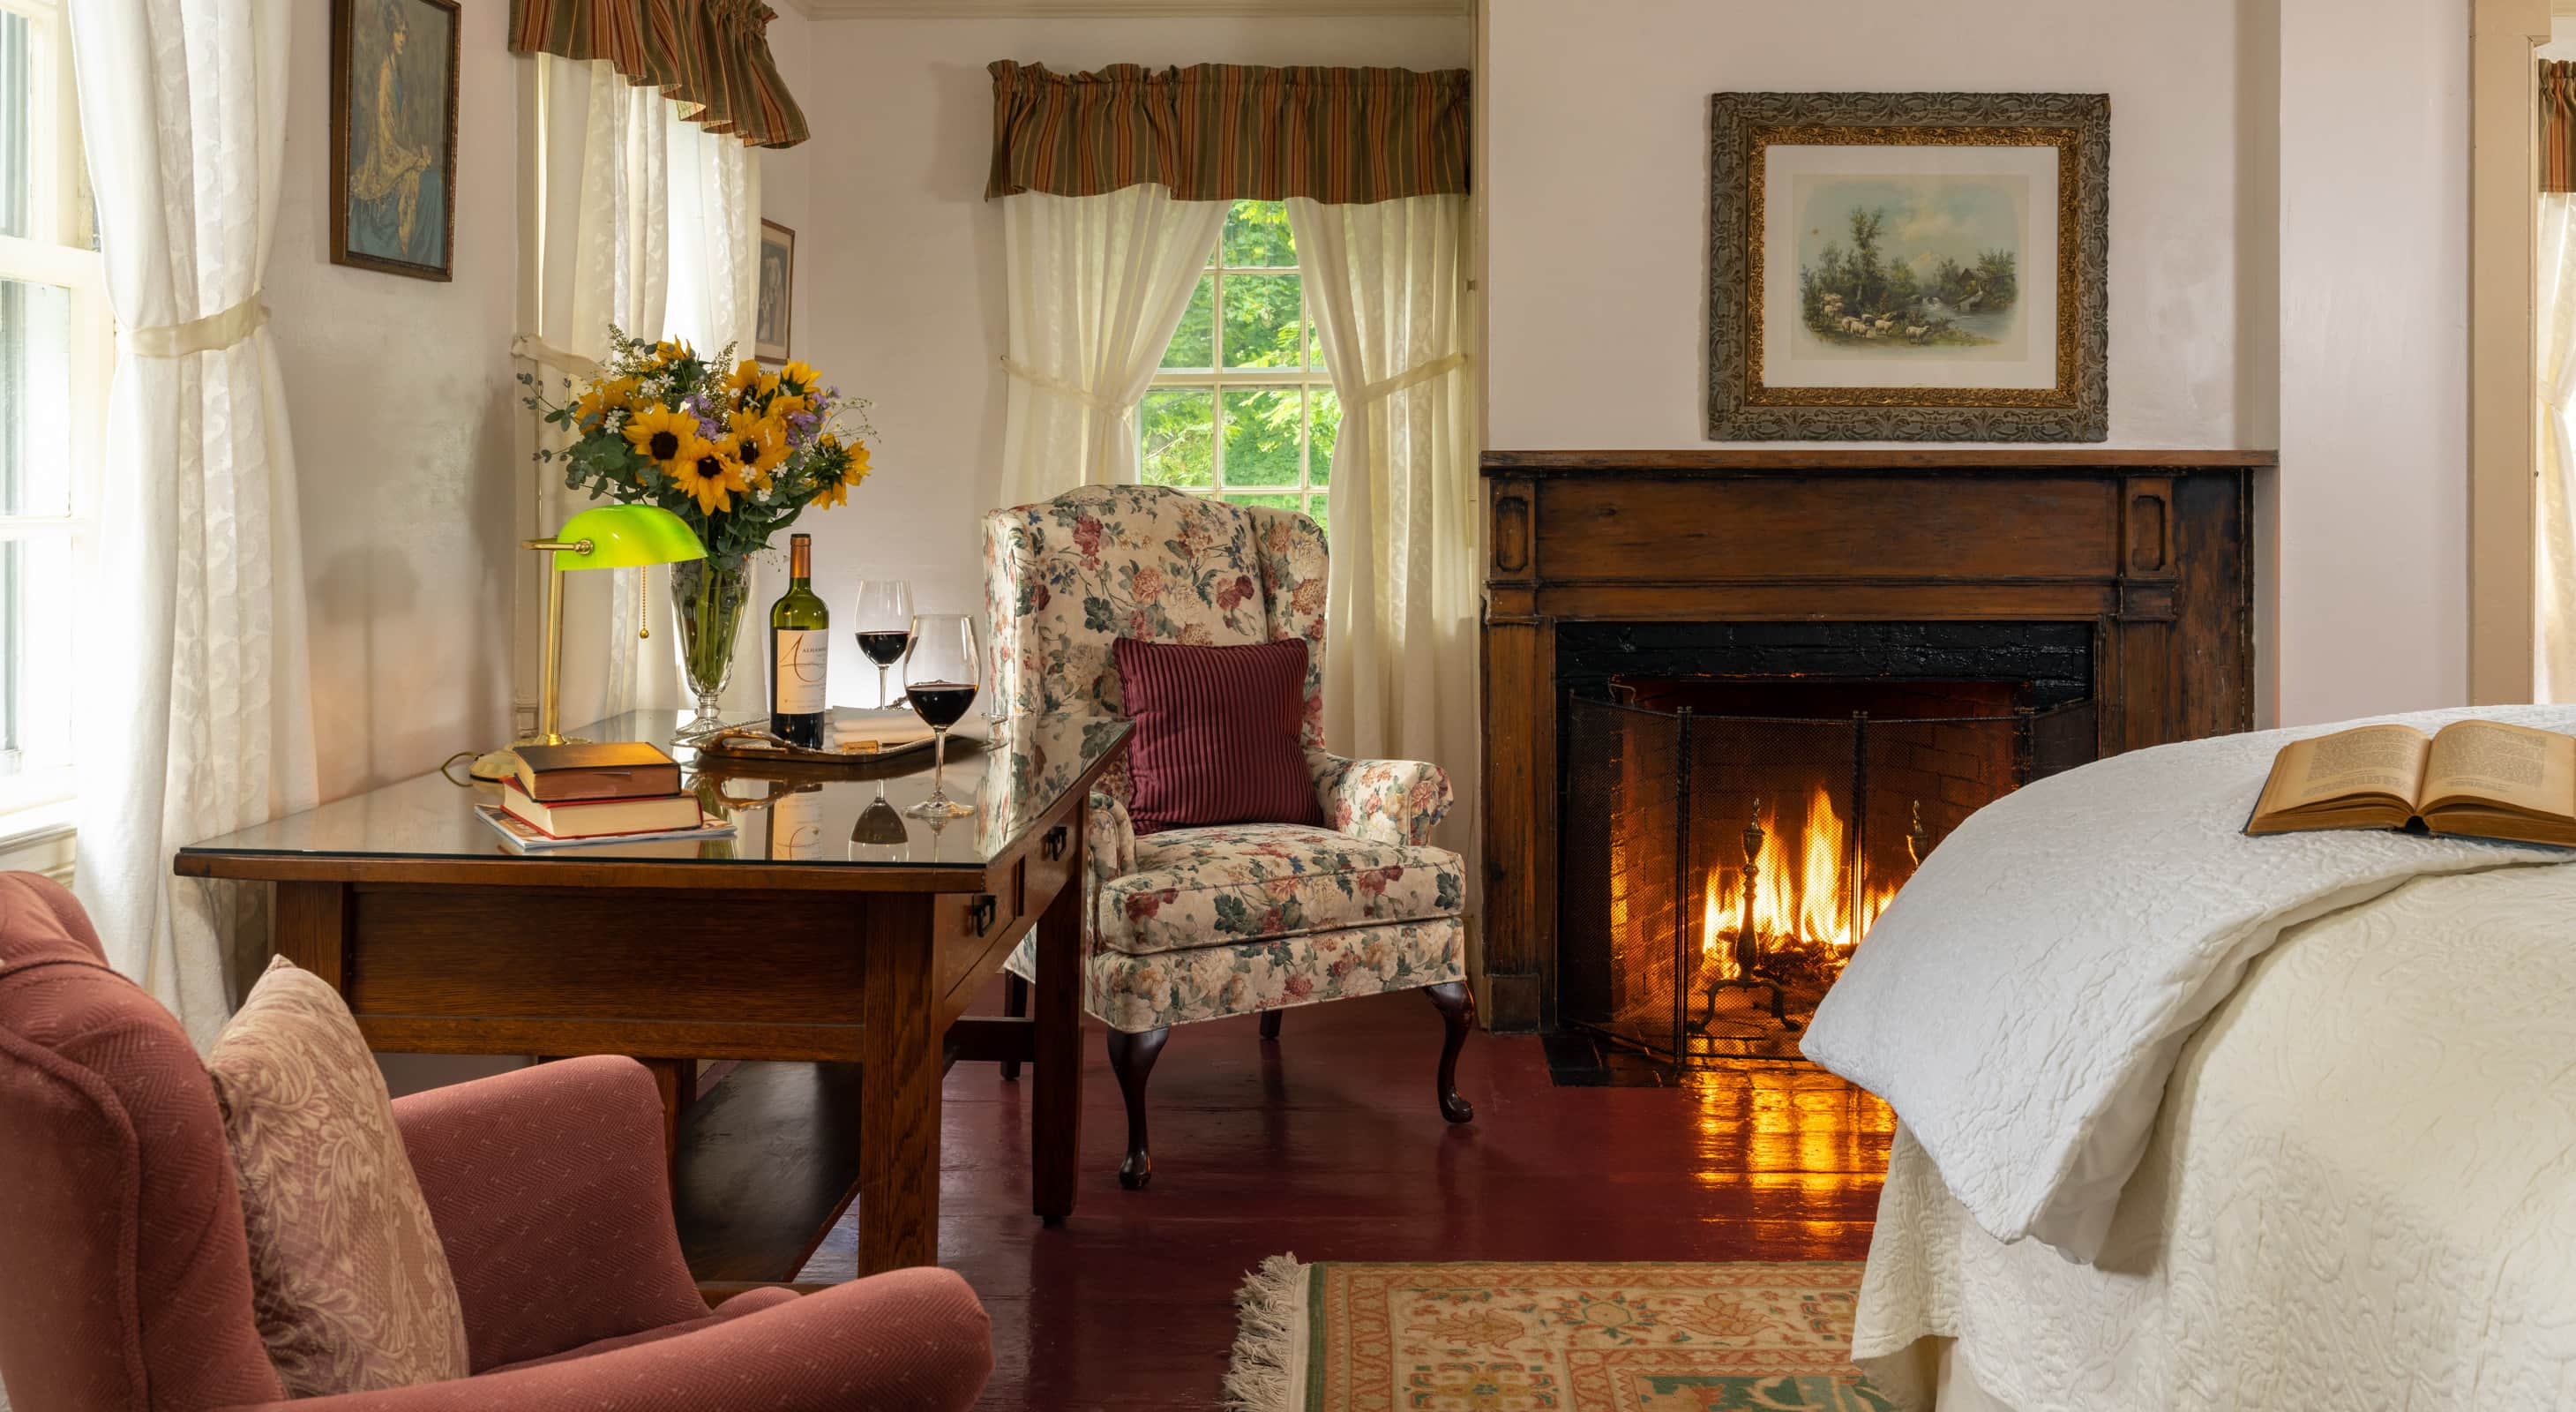 Room 5 at Historic Blue Hill Inn in Maine